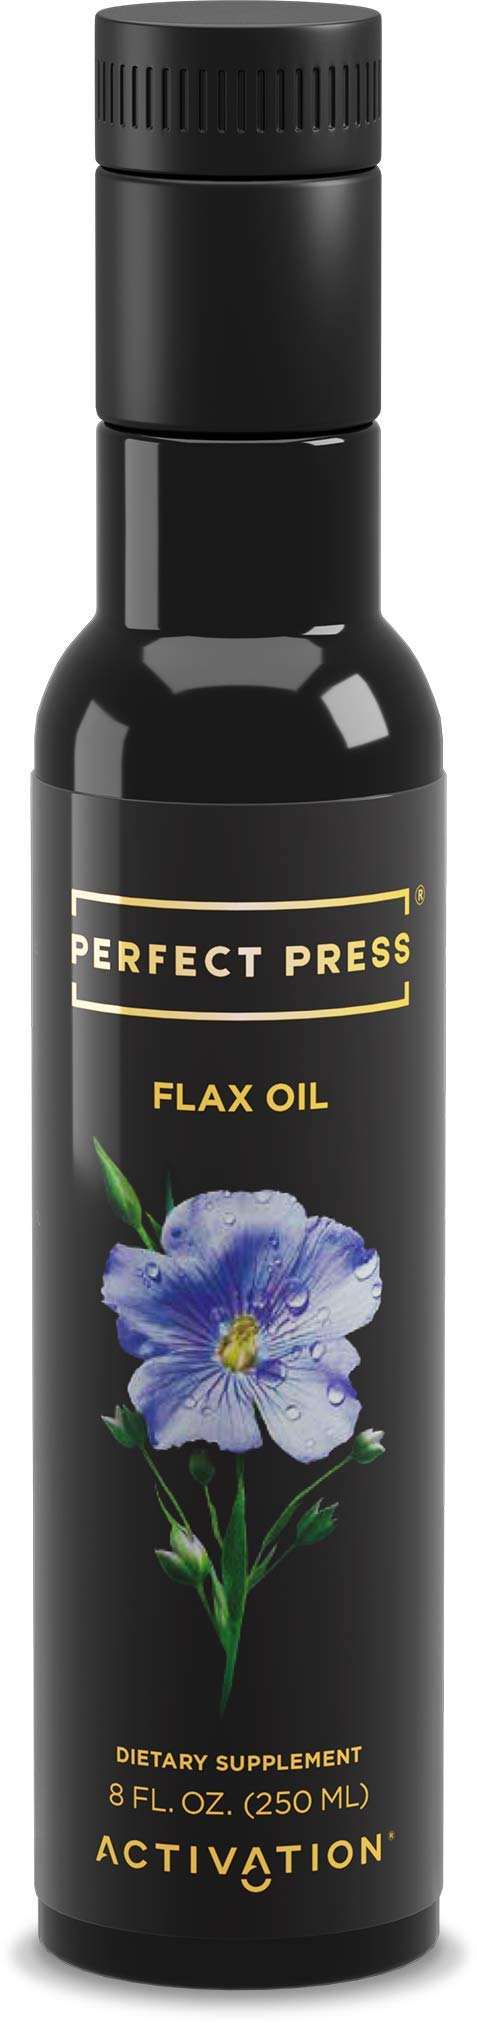 Activation Products, Perfect Press Flax Seed Oil - Great Tasting Cold Pressed Flaxseed Oil Supplement with Essential Omega 3 - 100% Vegan, Organic Flax Oil for Hair, Skin, Nails & Joints, 250ml